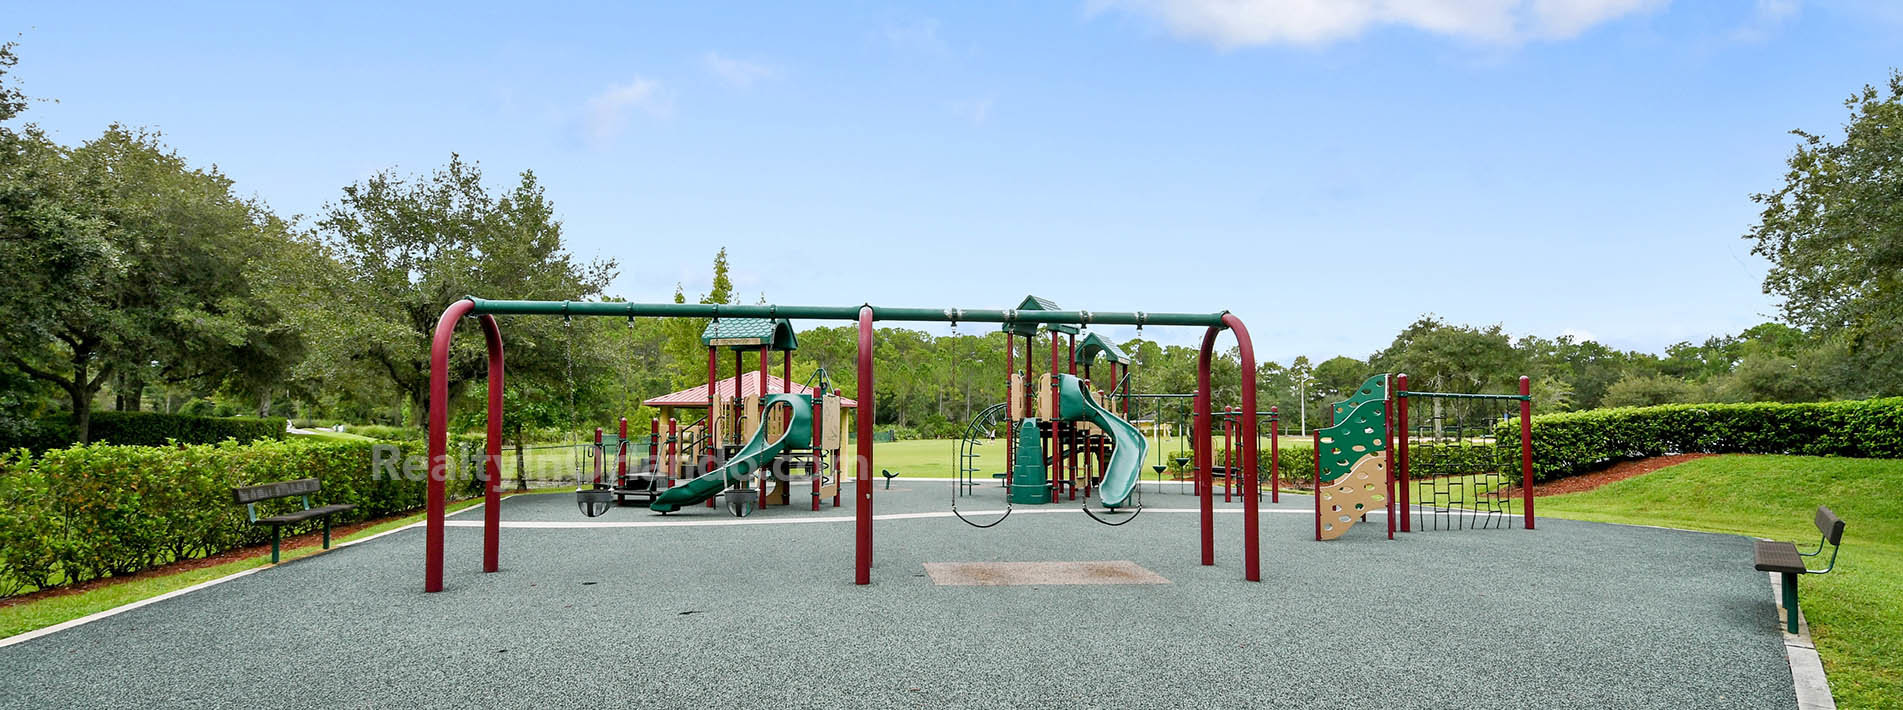 Stoneybrook East Golf Community Play Area